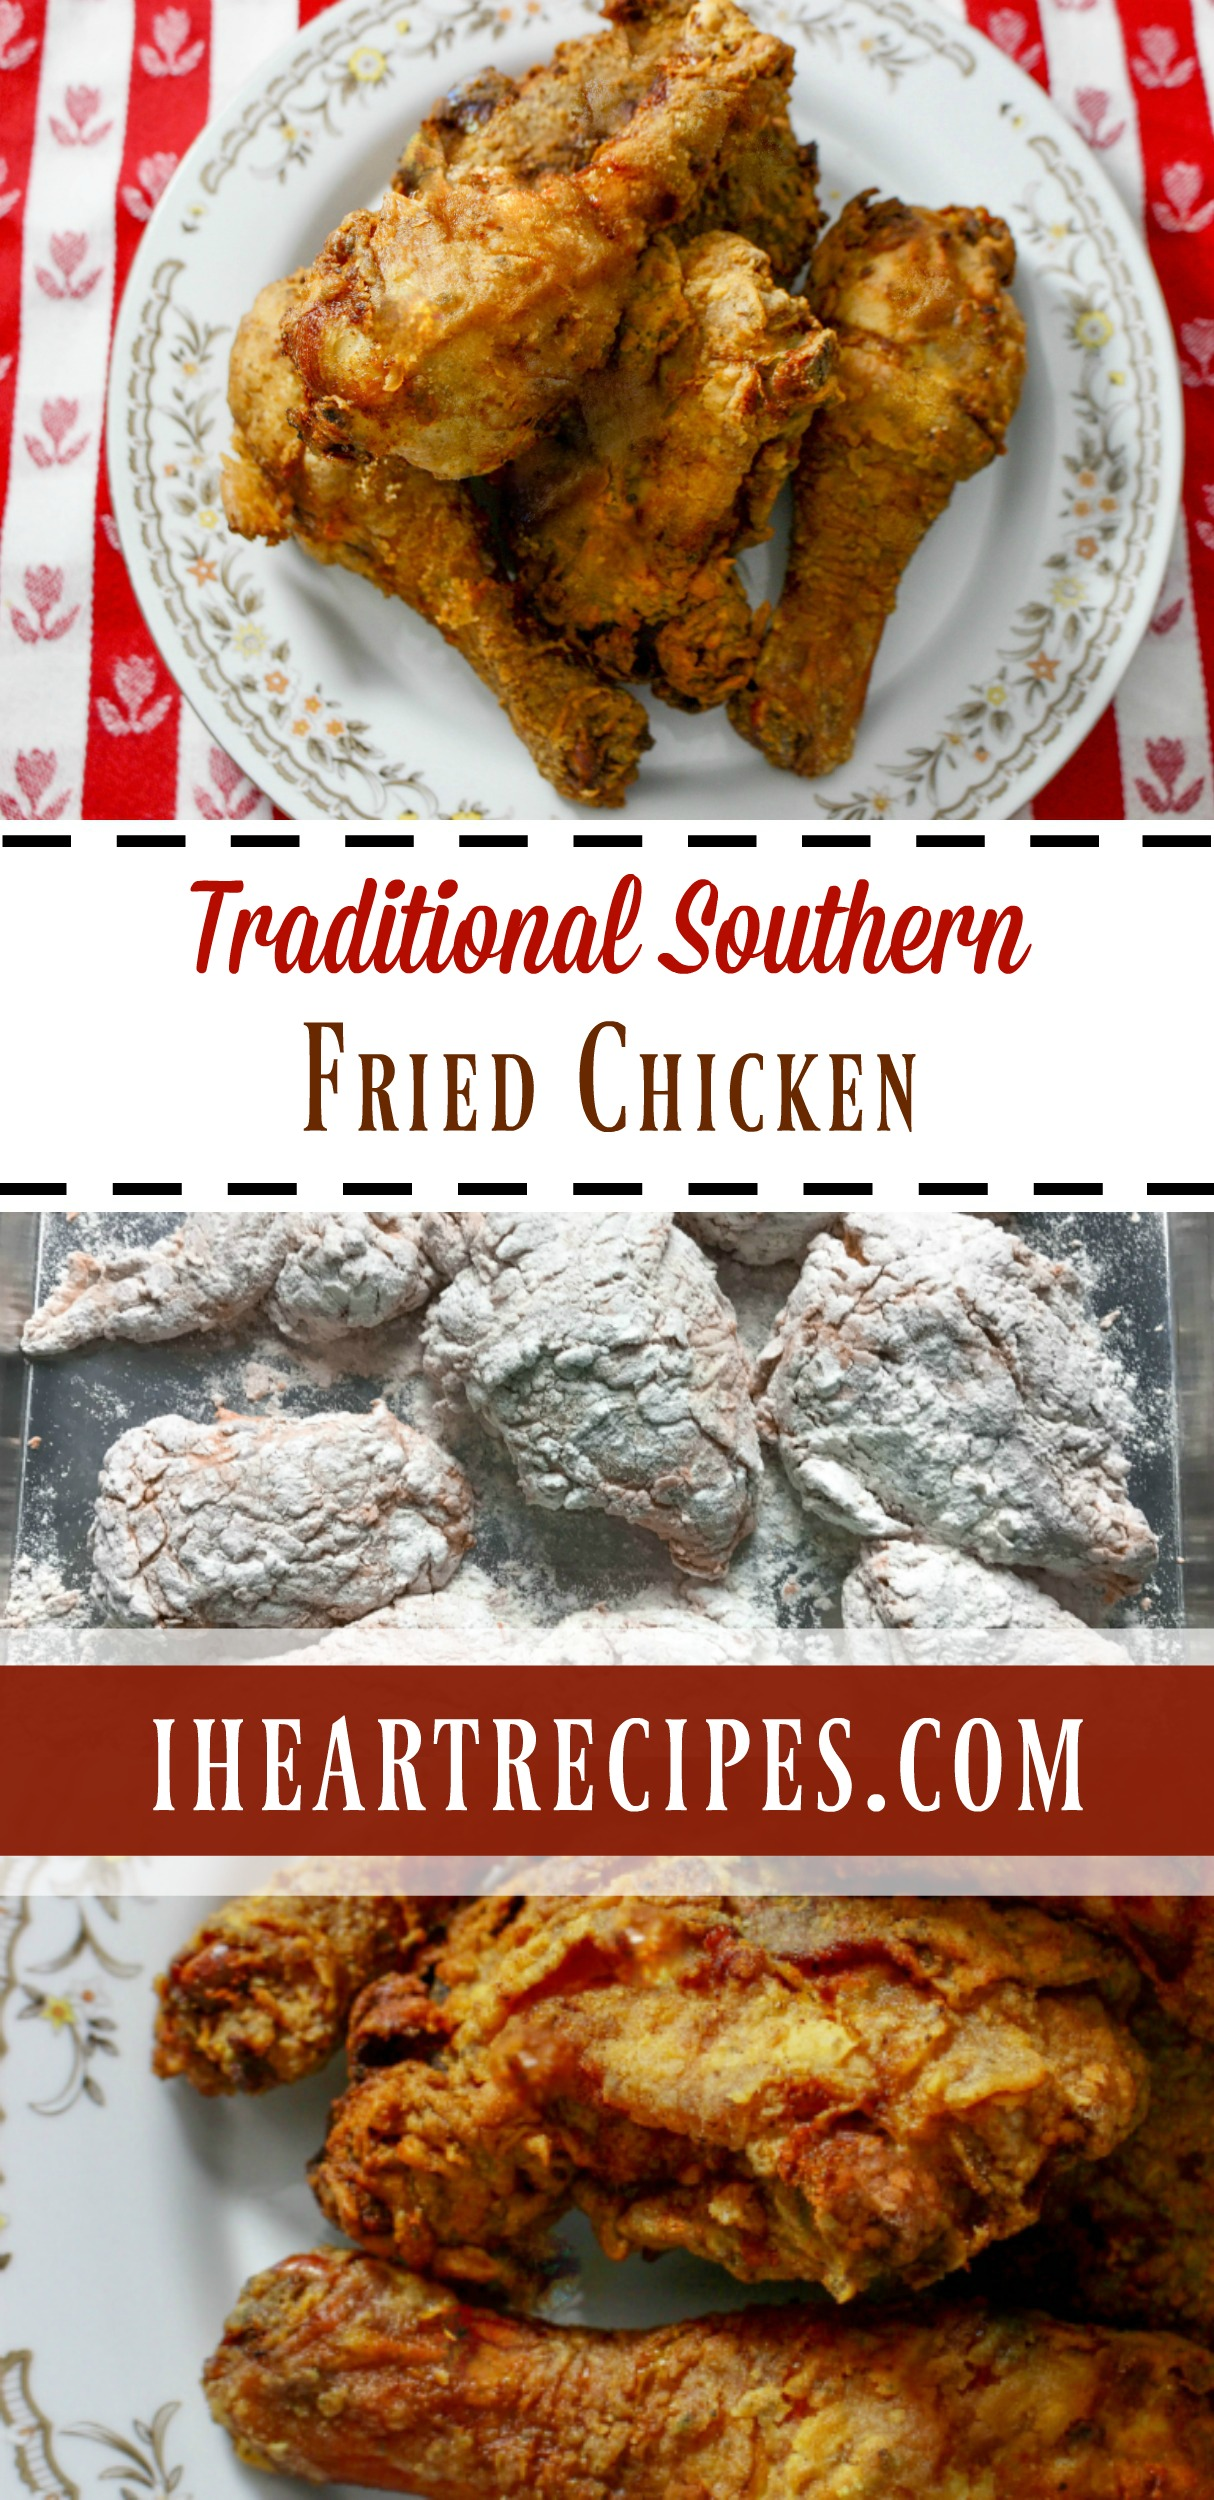 Traditional Southern Fried Chicken | I Heart Recpies